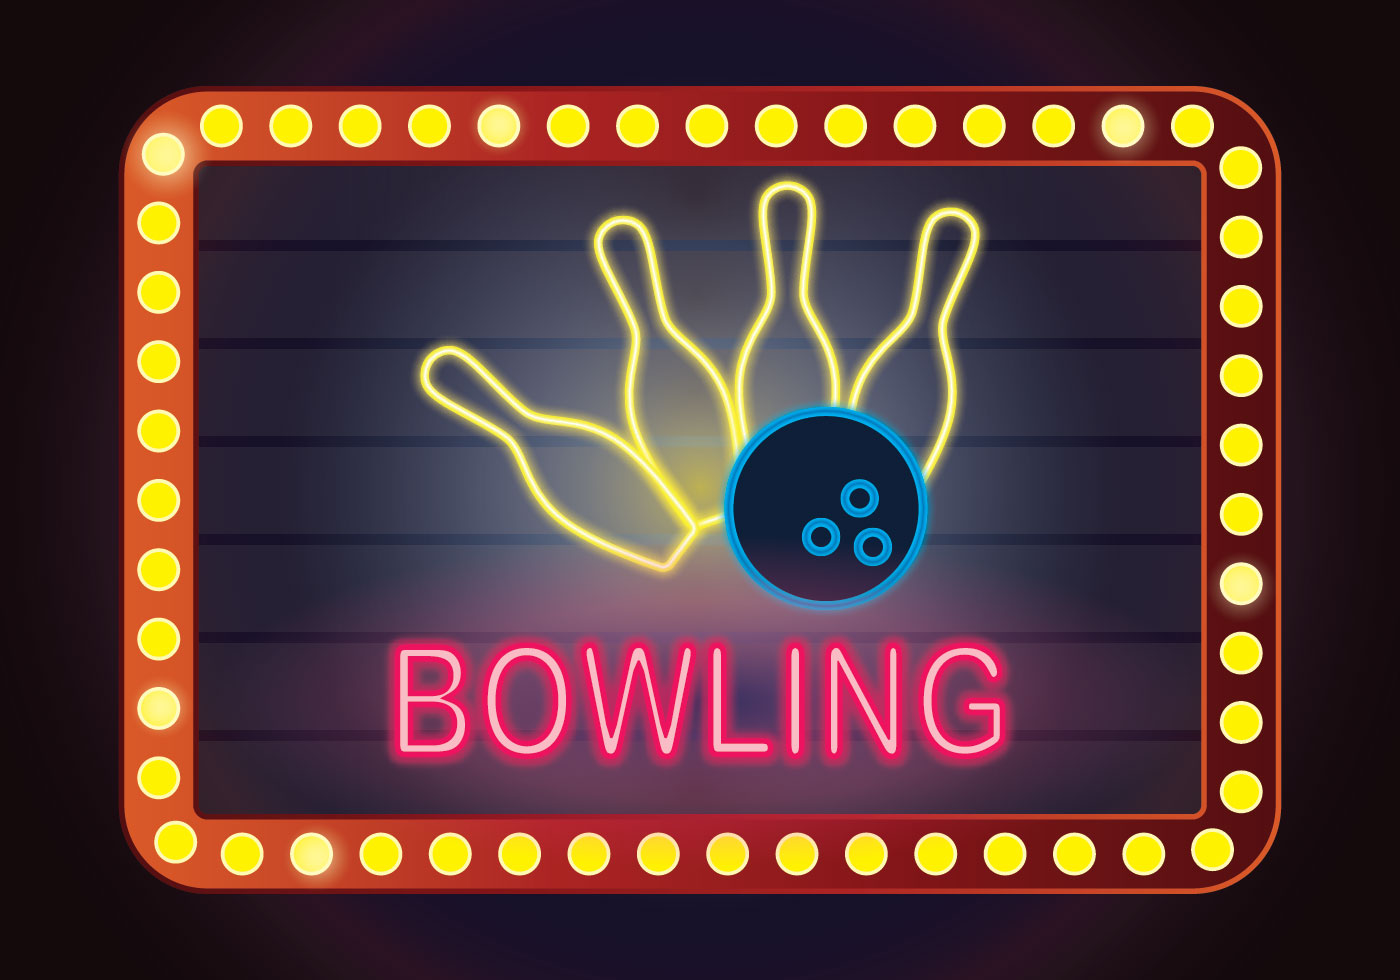 Neon Bowling Illustration Download Free Vector Art Stock Graphics Amp Images